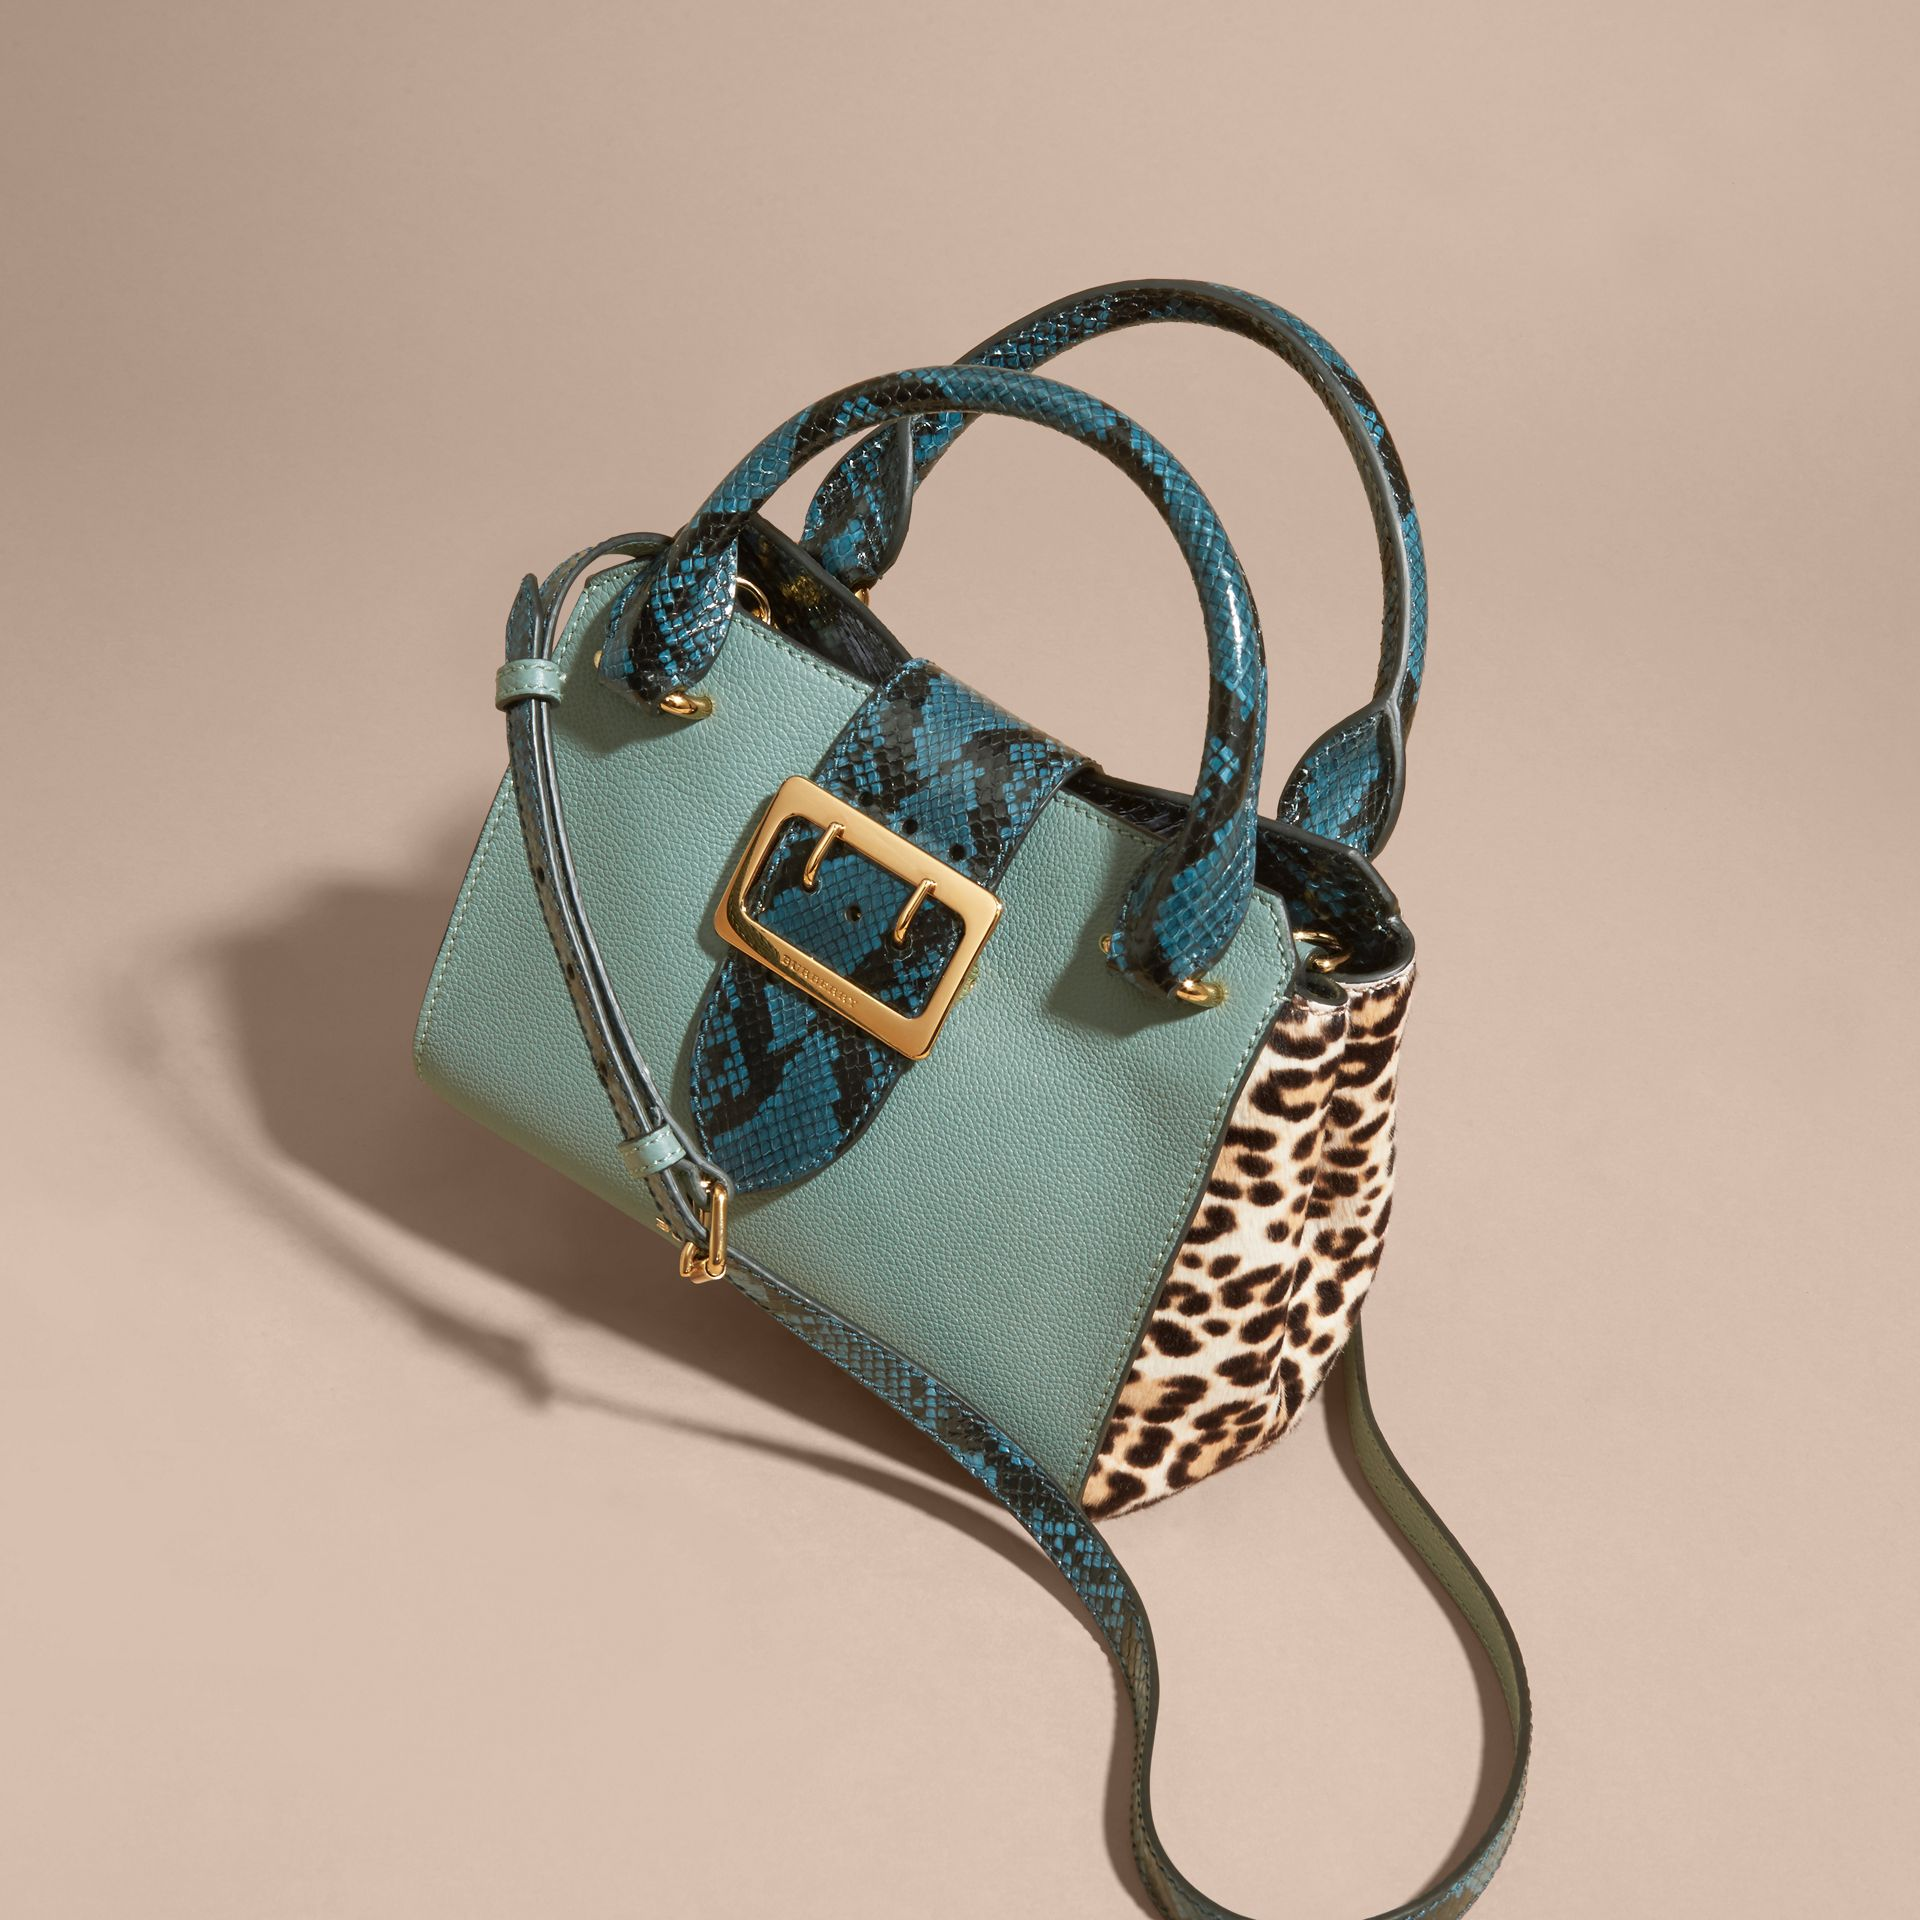 Eucalyptus green The Small Buckle Tote in Leather and  Leopard-print Calfskin Eucalyptus Green - gallery image 8